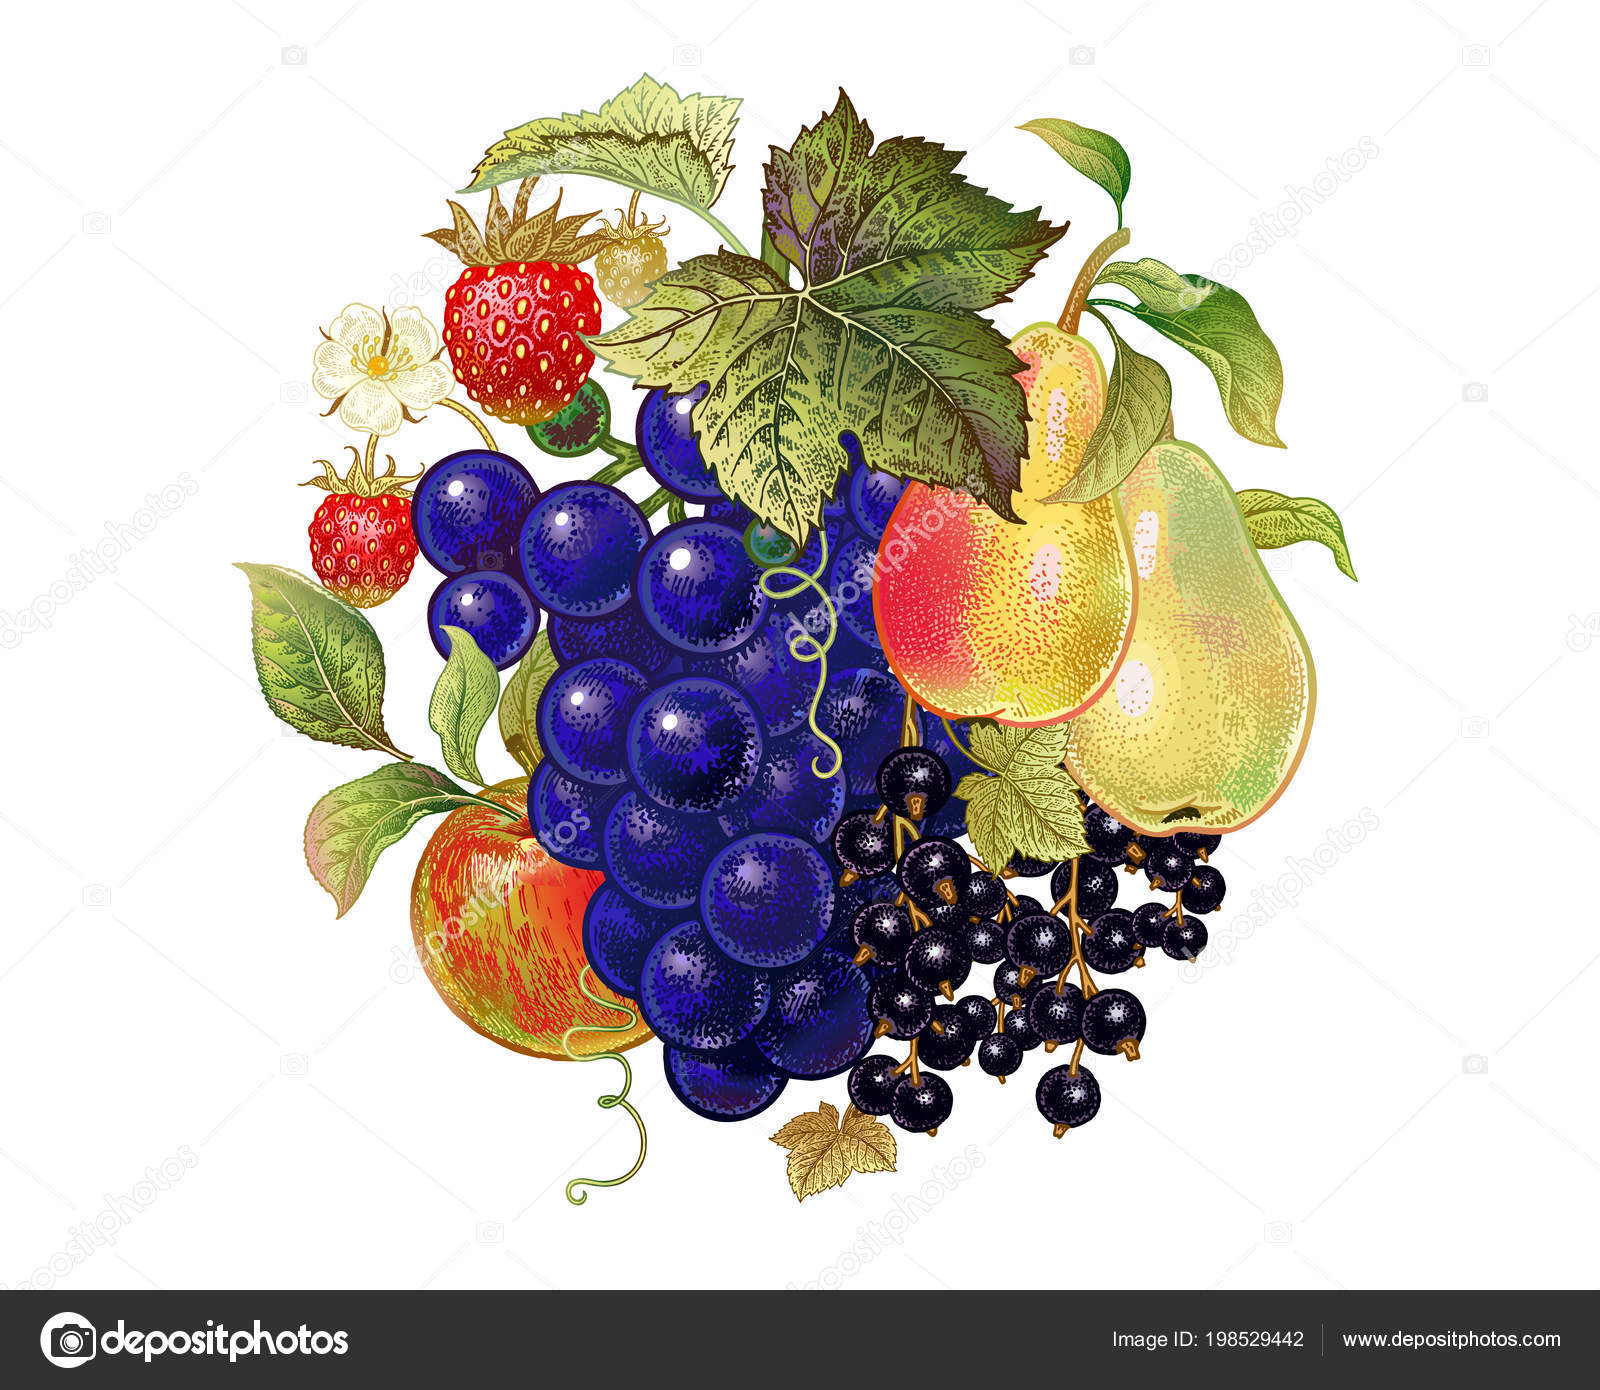 Fruits Berries Decoration Grapes Pears Black Currant Apple